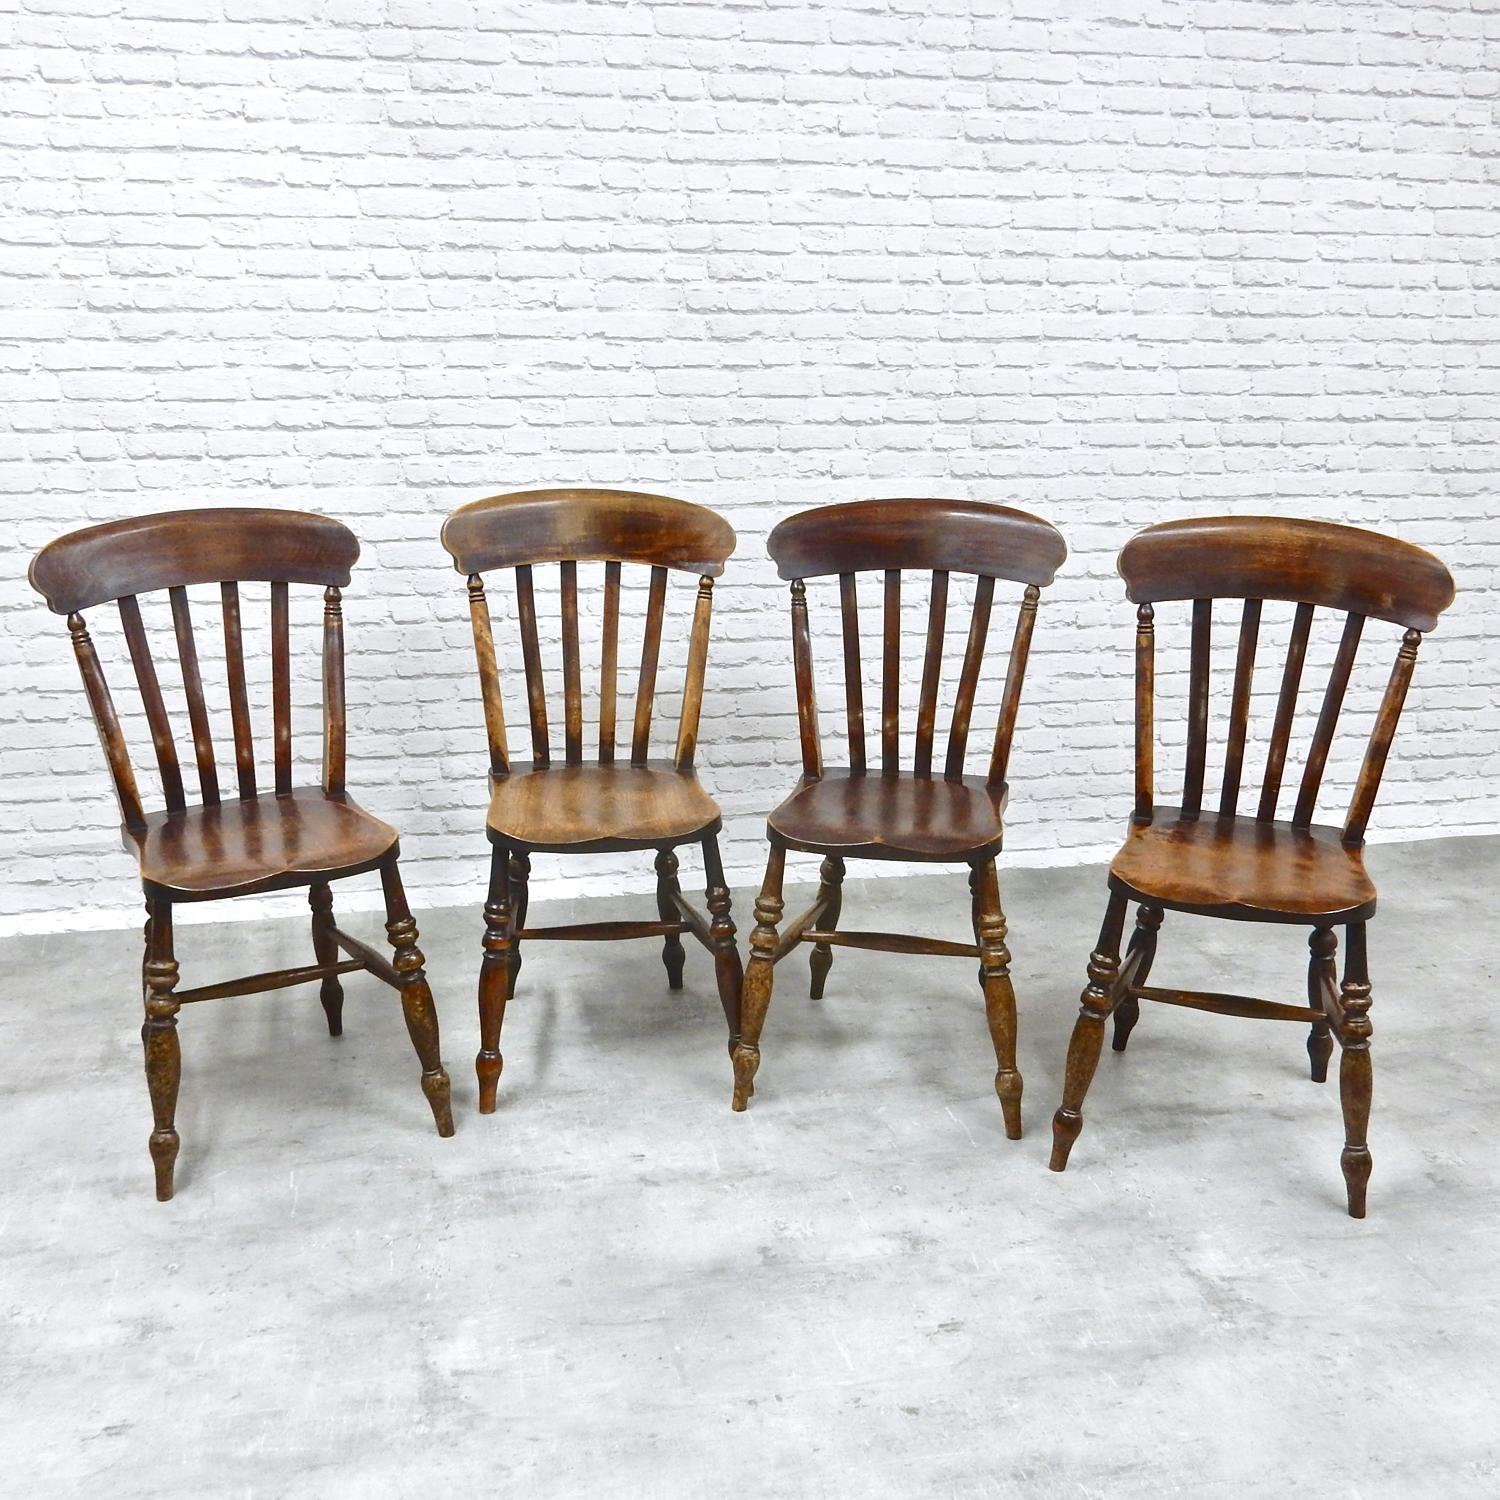 C19th Farmhouse Kitchen Chairs